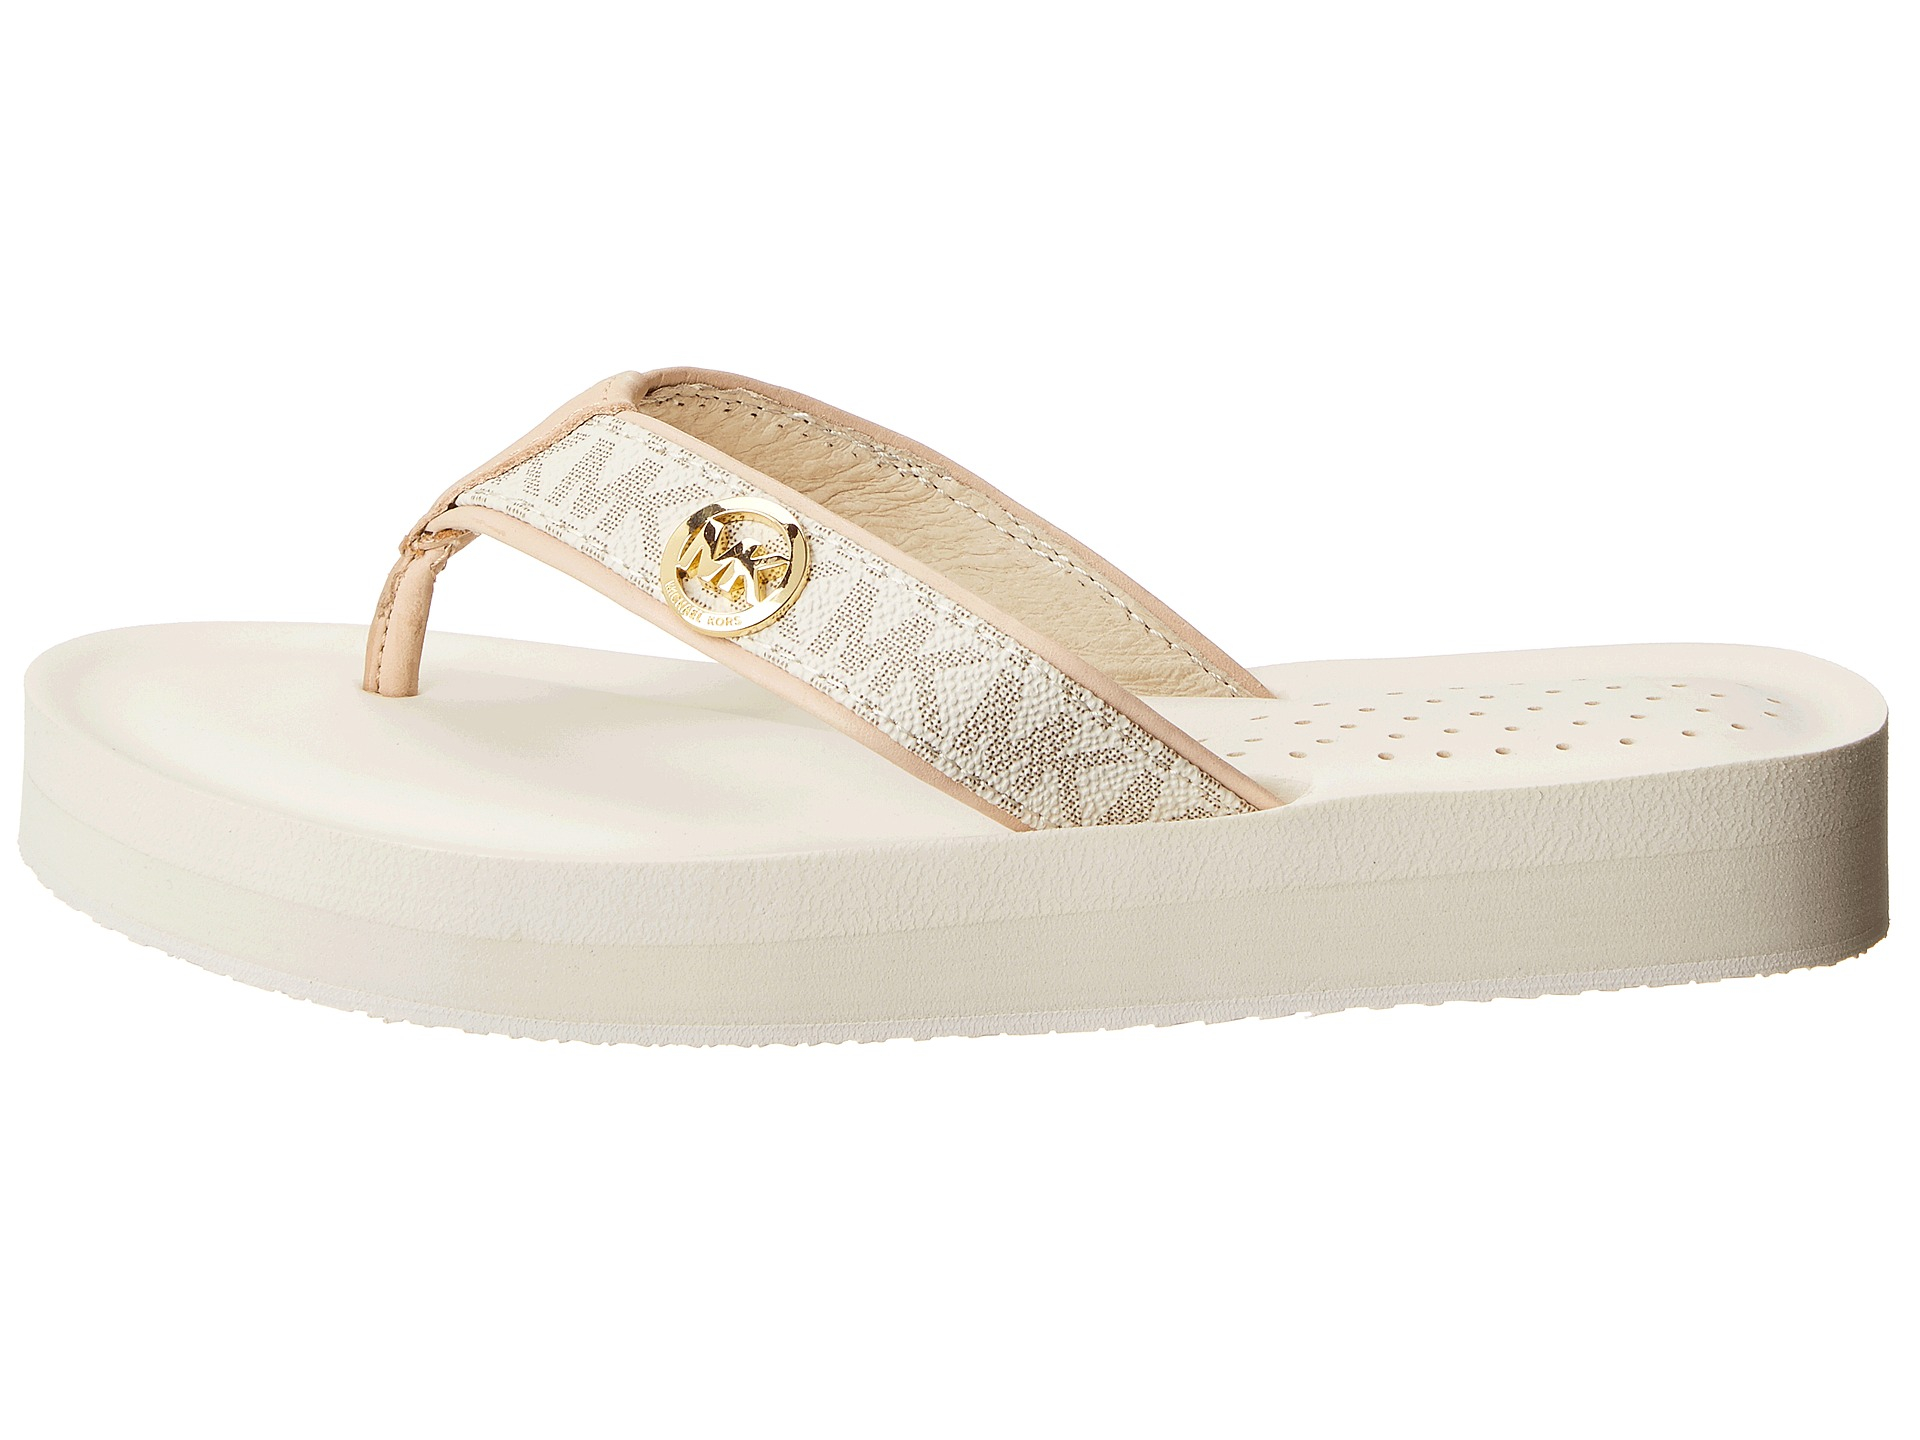 529451aceb77f6 Lyst - MICHAEL Michael Kors Gage Flip Flop in White